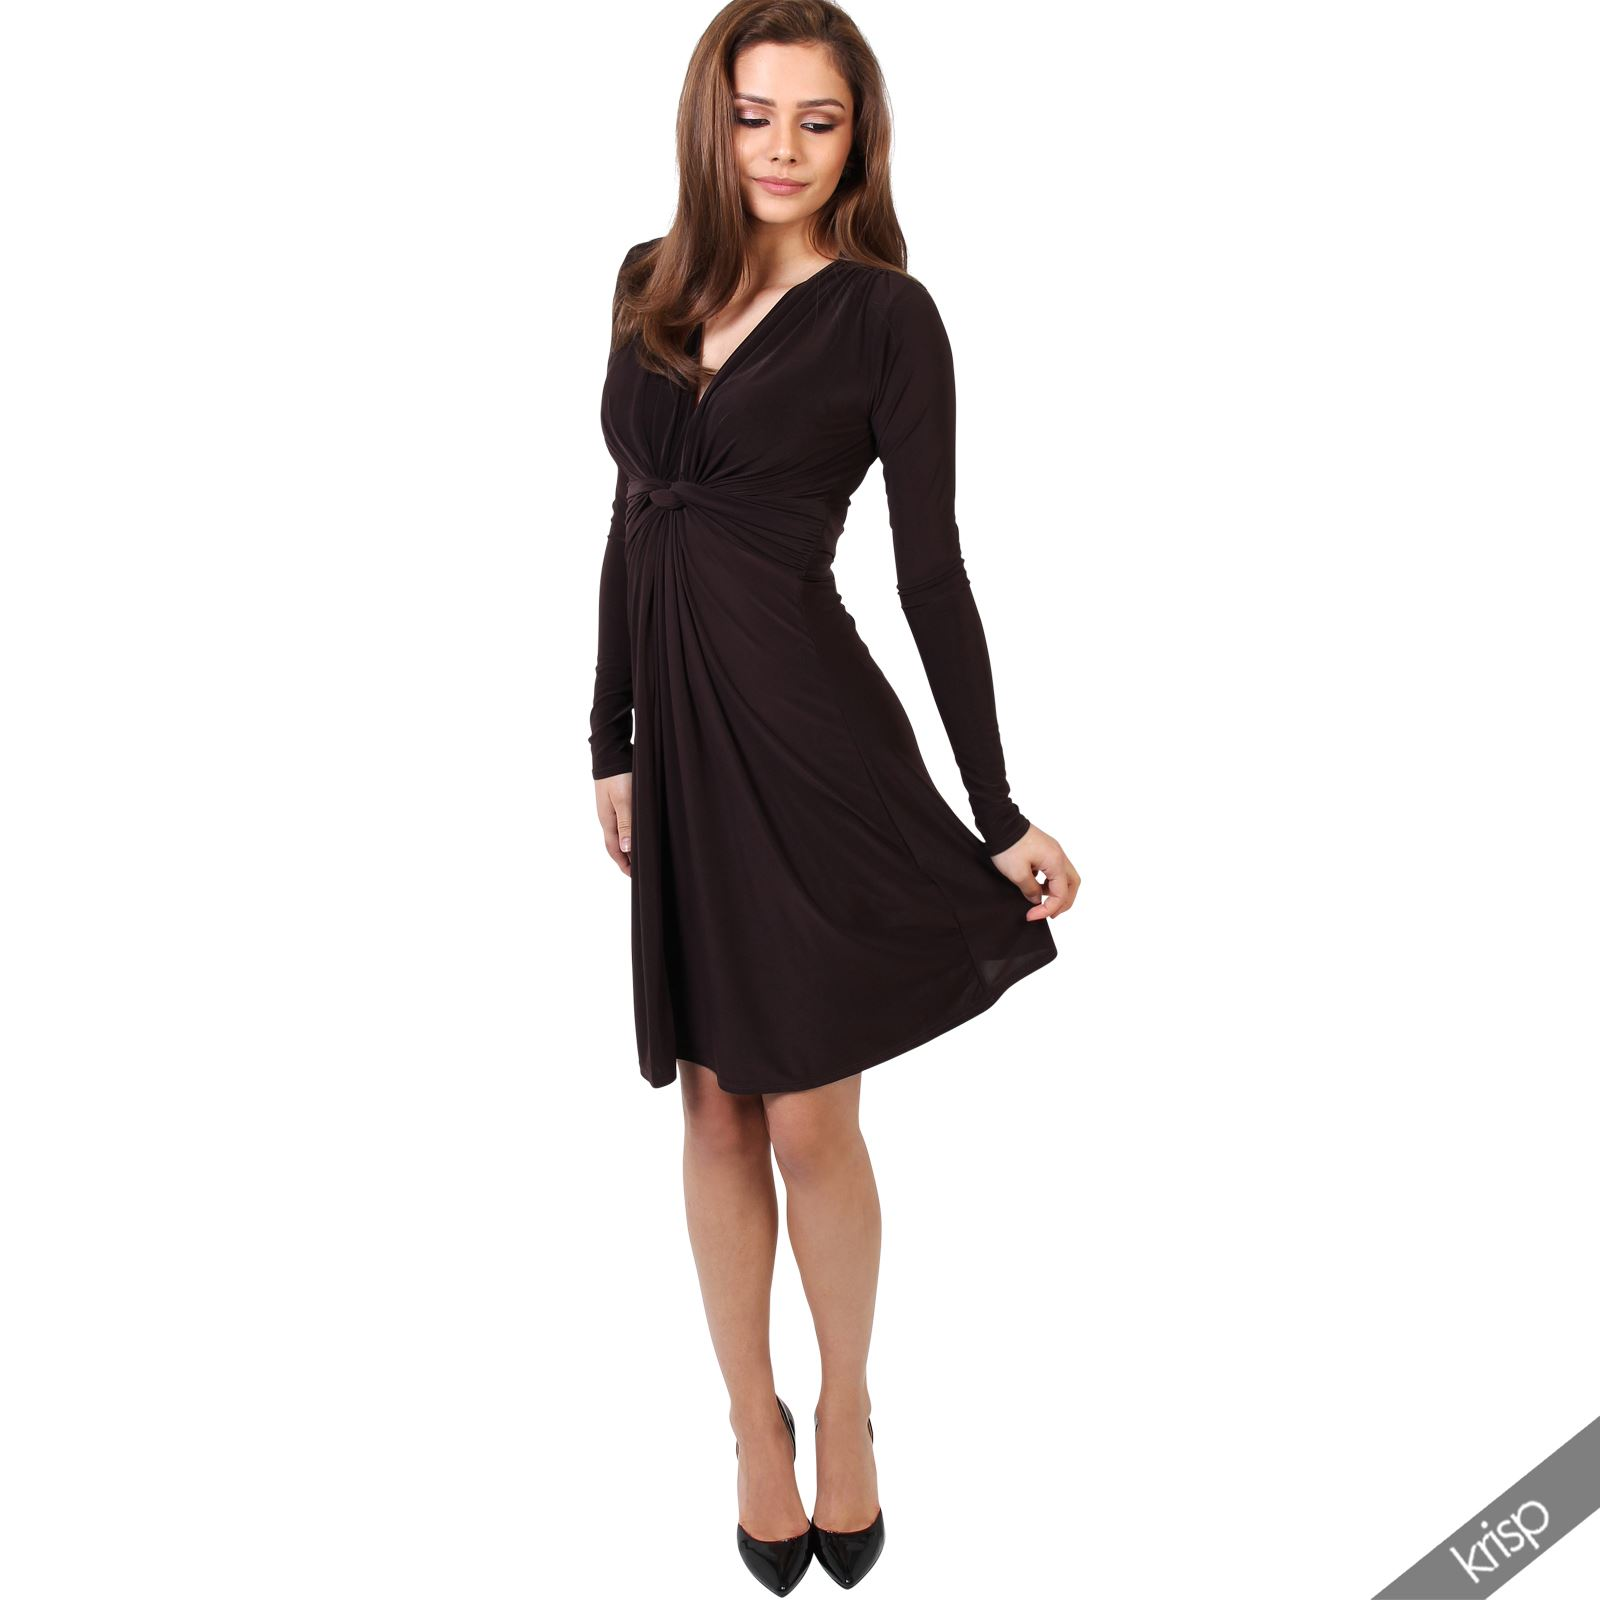 Womens-Ladies-V-Neck-Dress-Knee-Length-Mini-Ruched-Pleated-Swing-Top-Party thumbnail 27